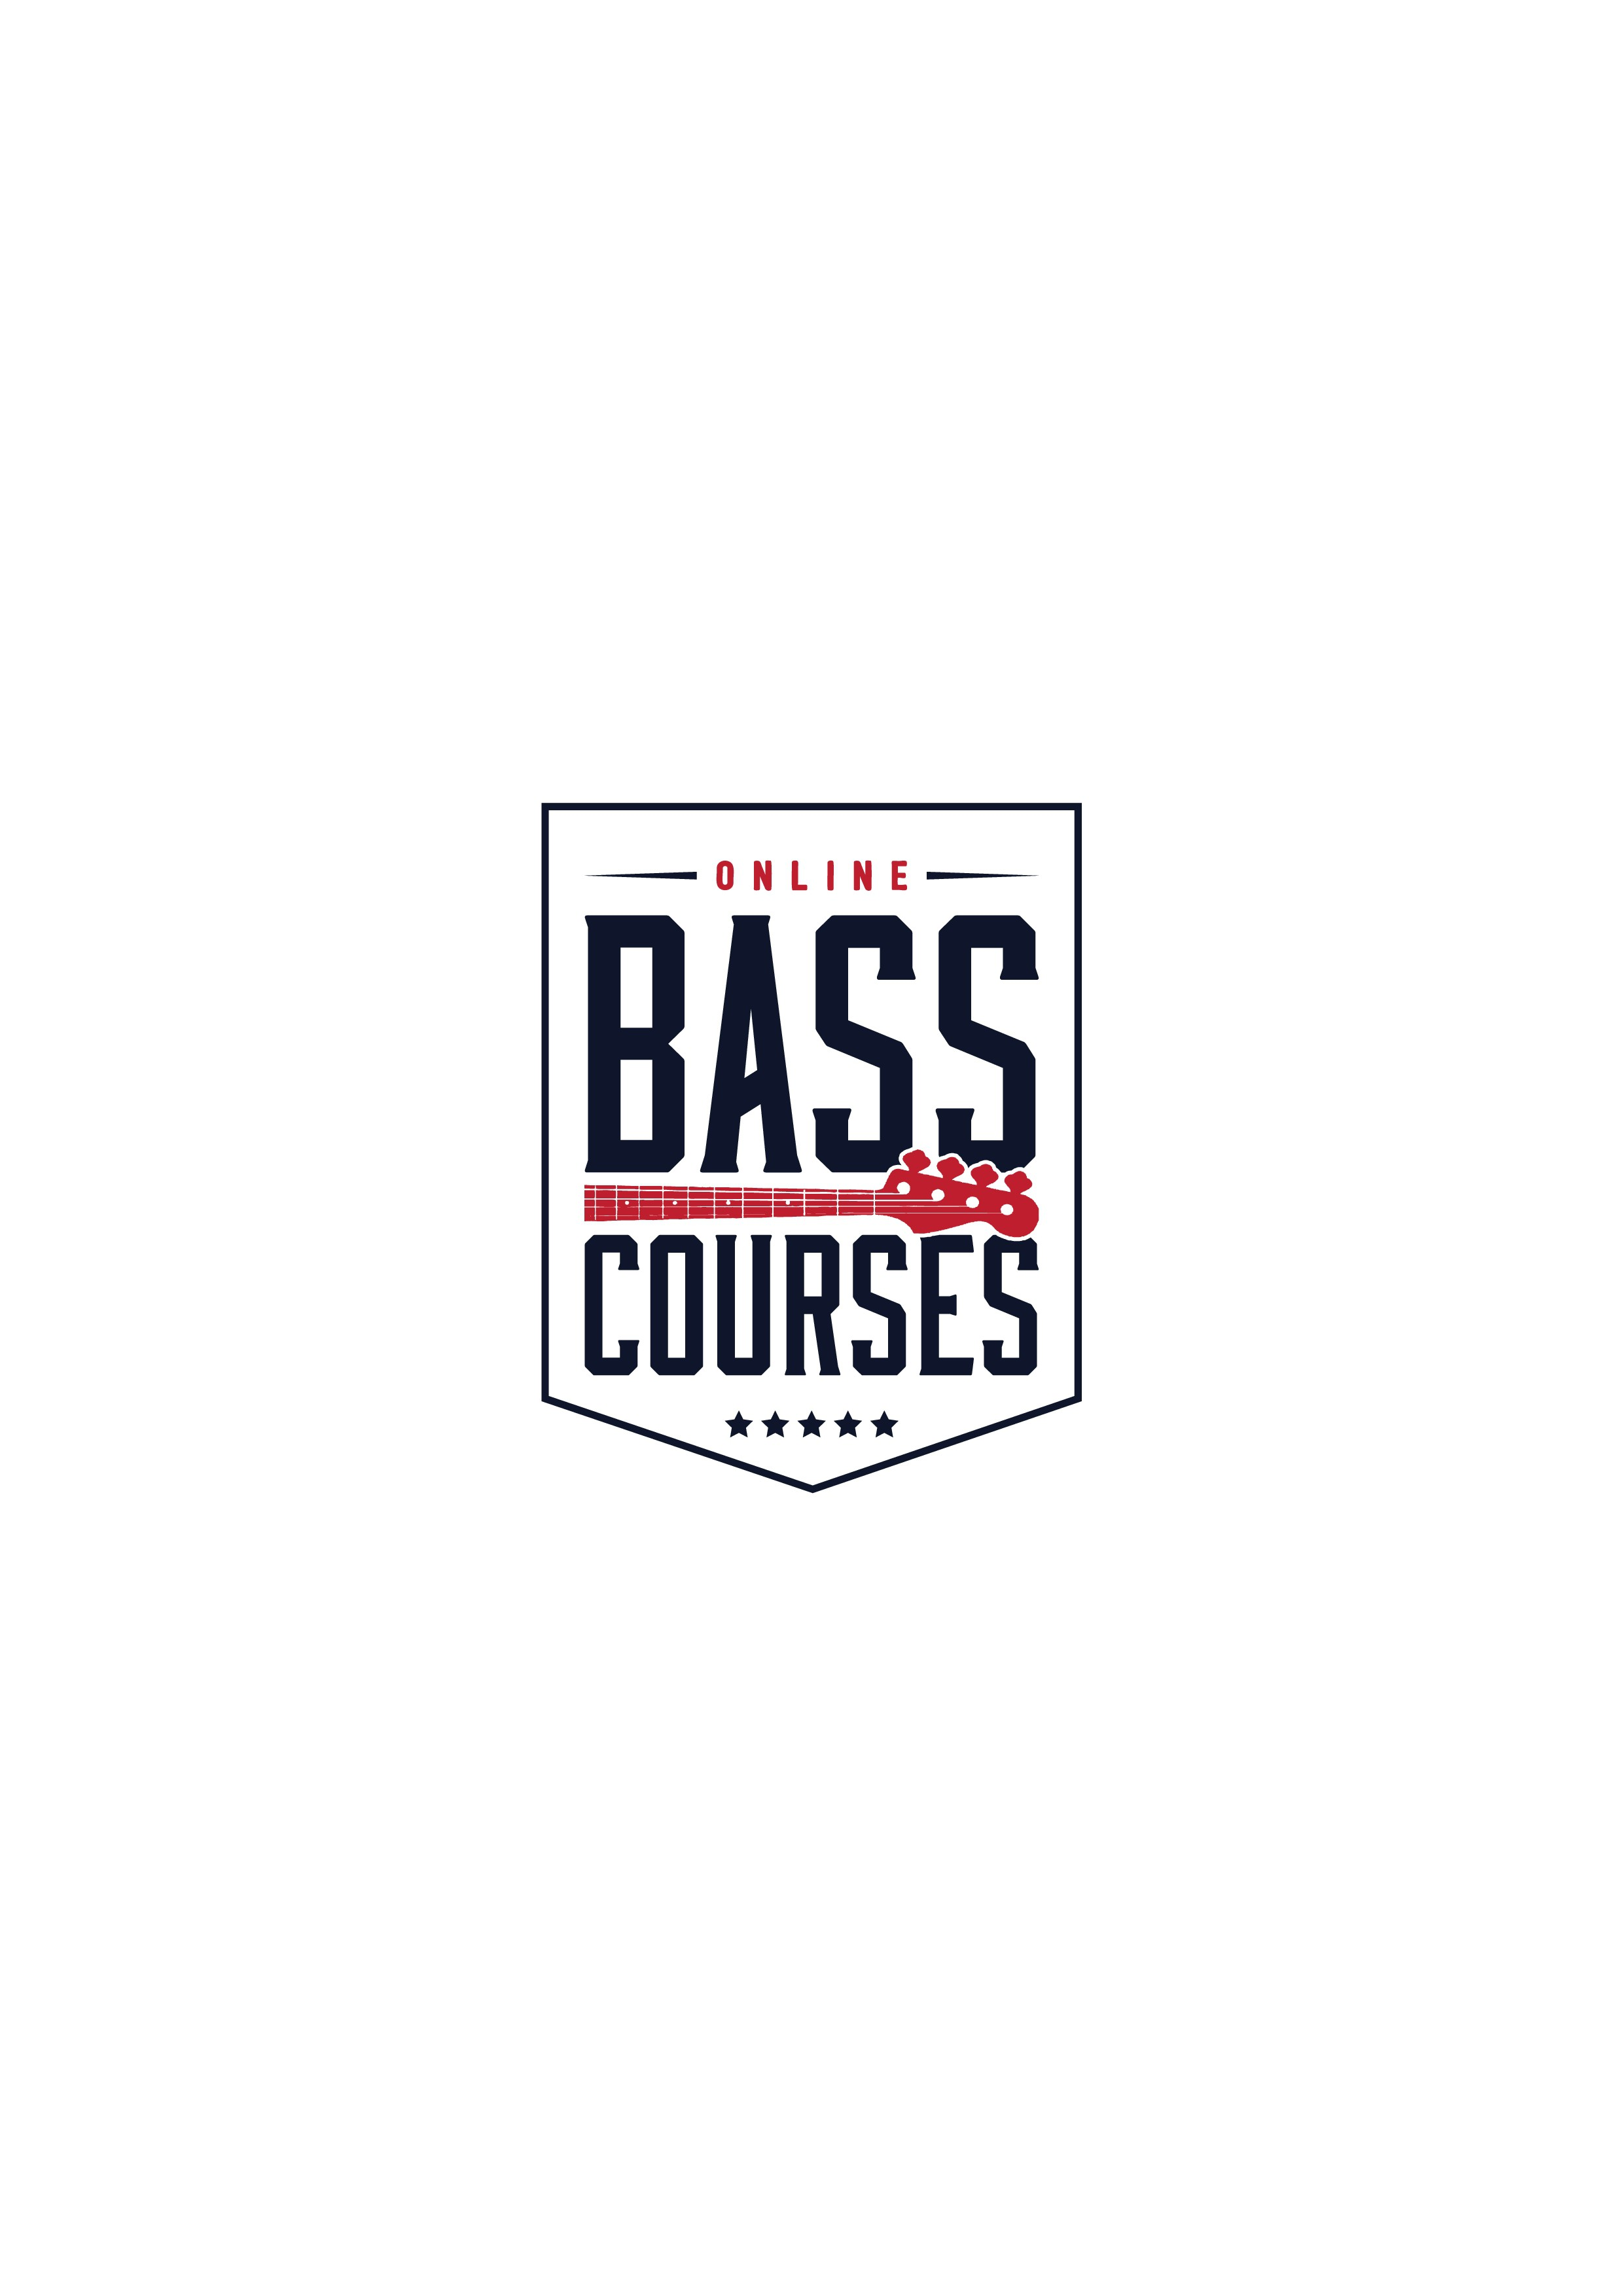 Create a memorable, engaging logo for Online Bass Courses.